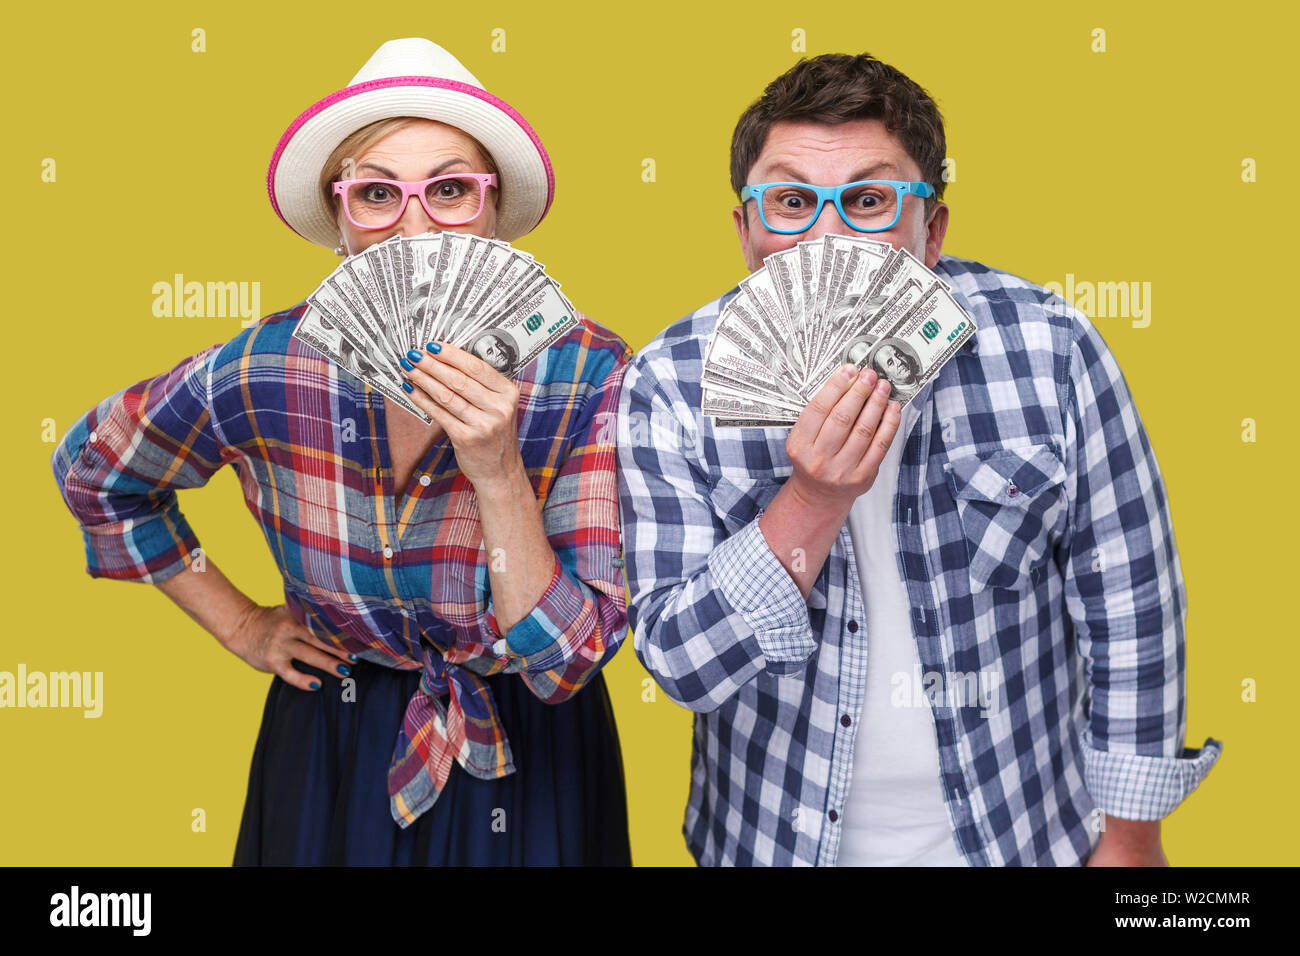 Couple of funny friends, adult man and woman in casual checkered shirt standing together holding, covering mouth with fan of dollars, looking at camer - Stock Image